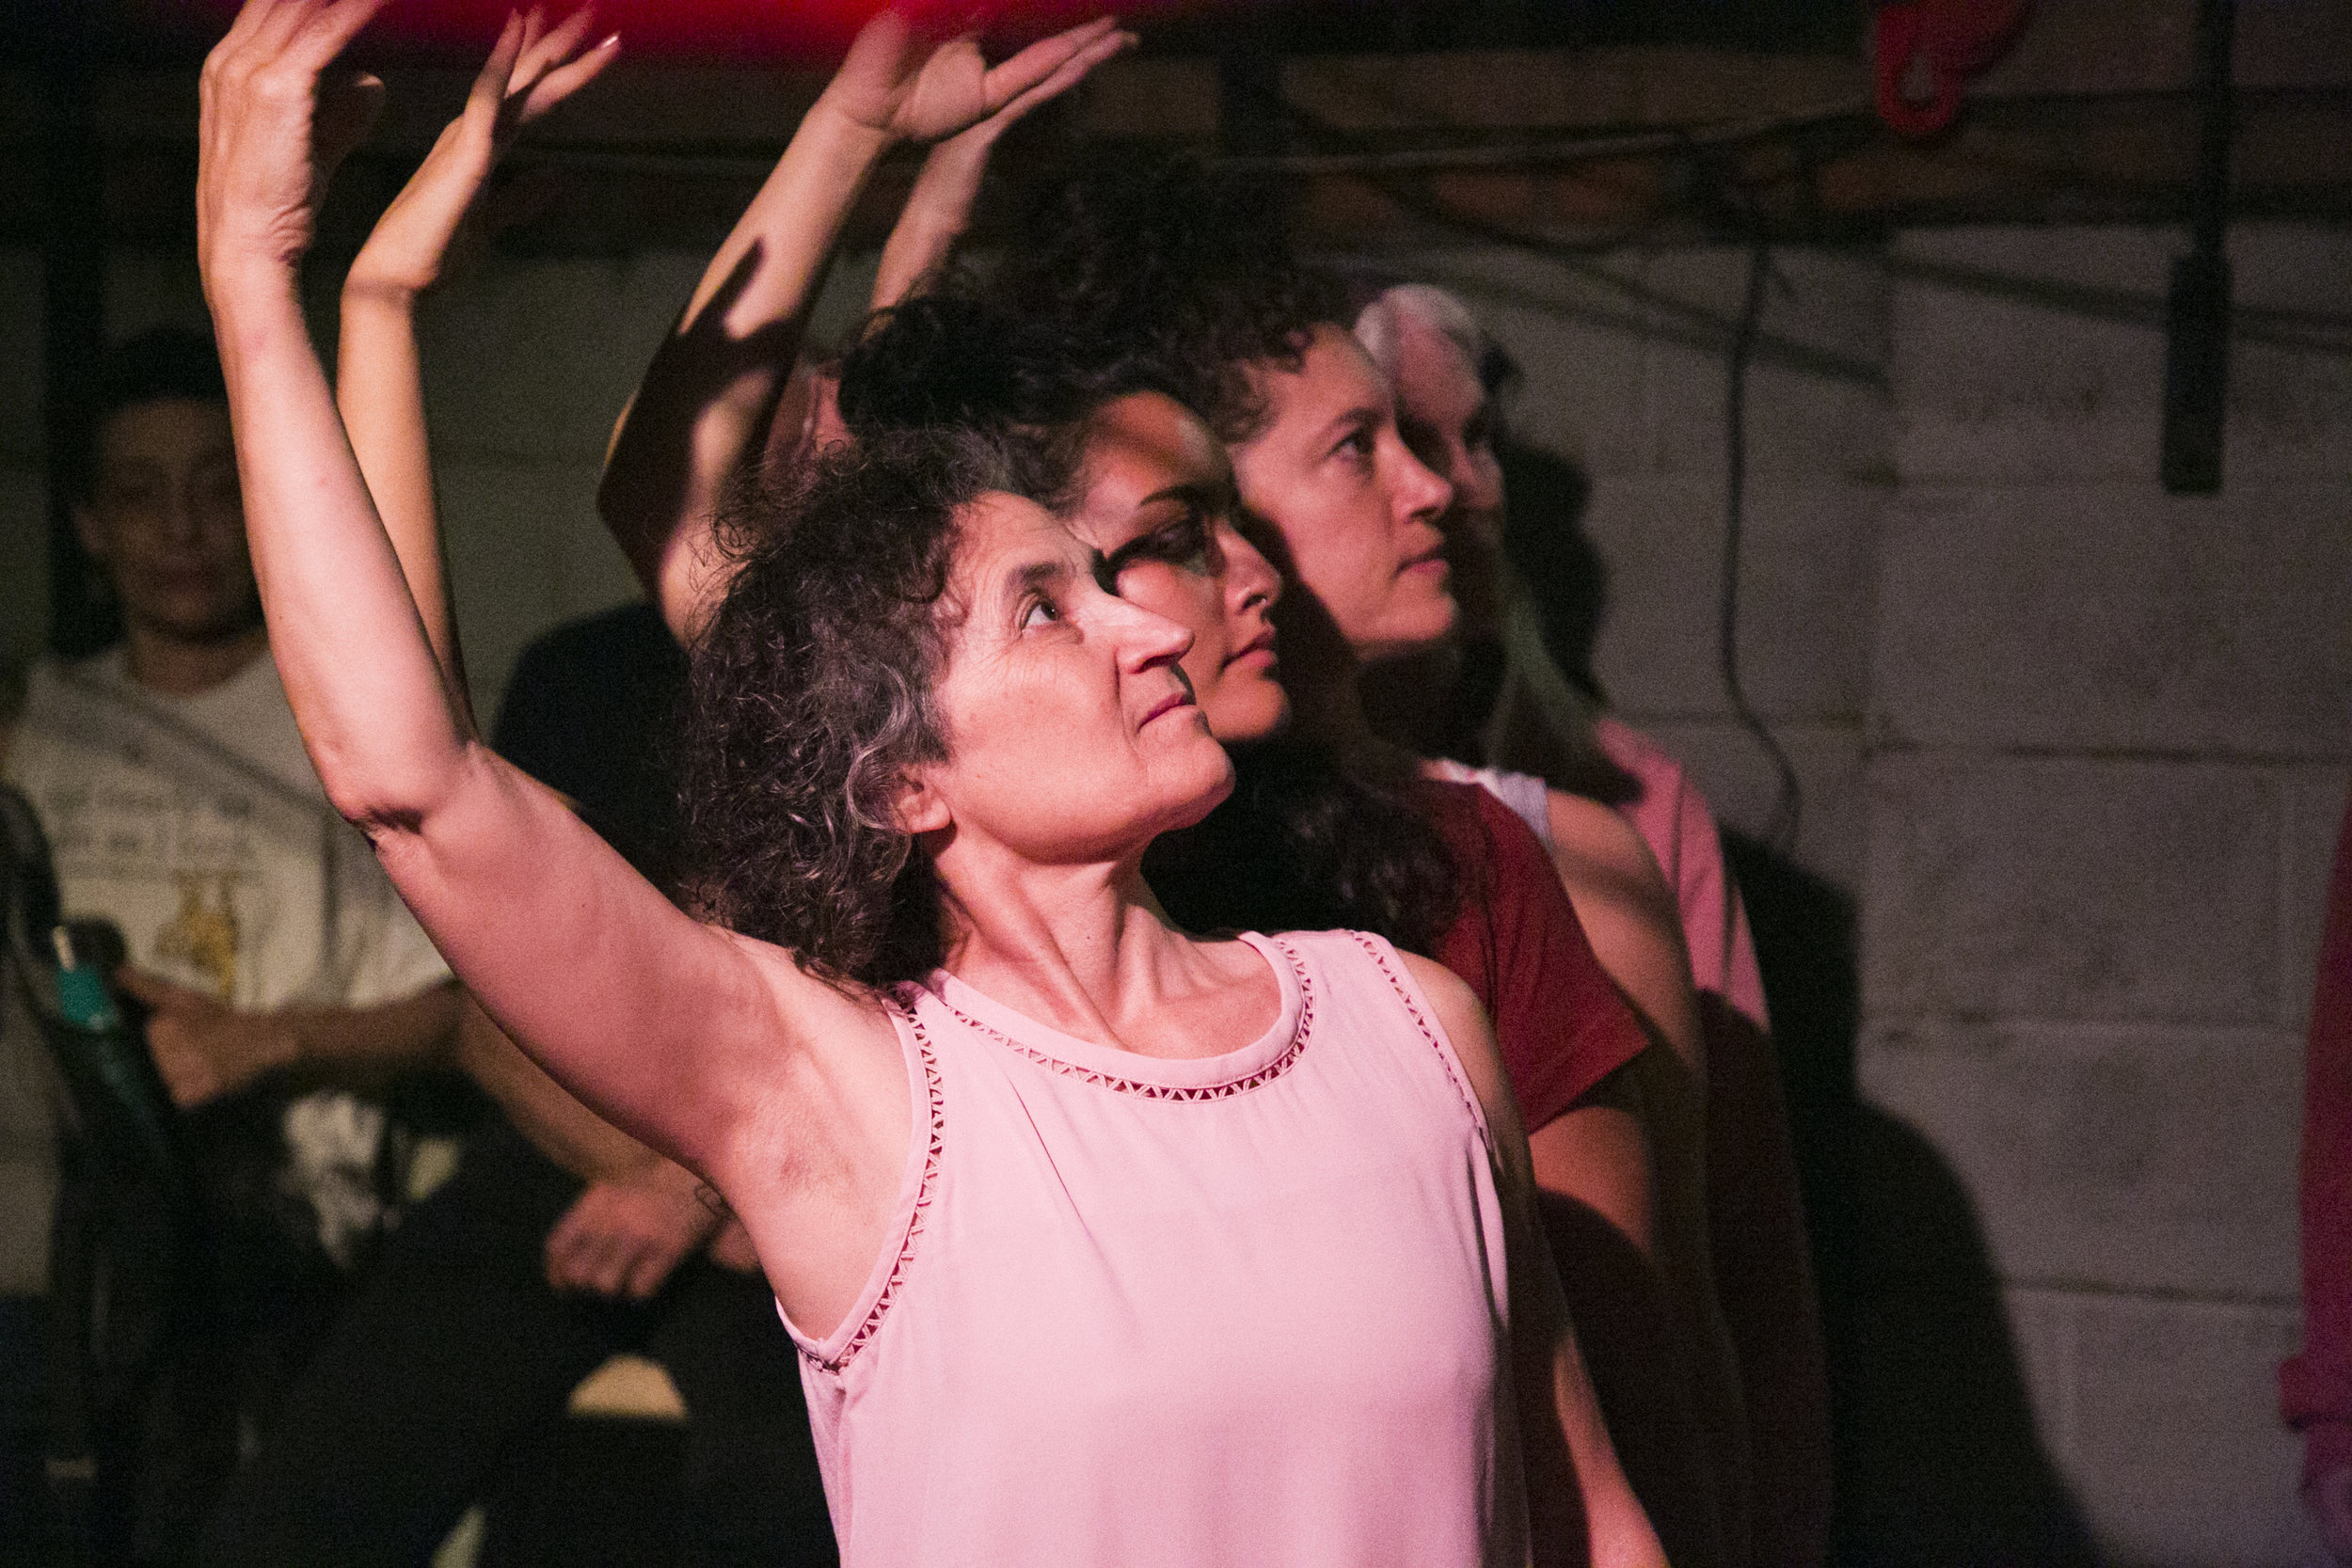 Dancers: Trina Mannino and company at Triskelion in Brooklyn, NY Photo: Whitney Browne